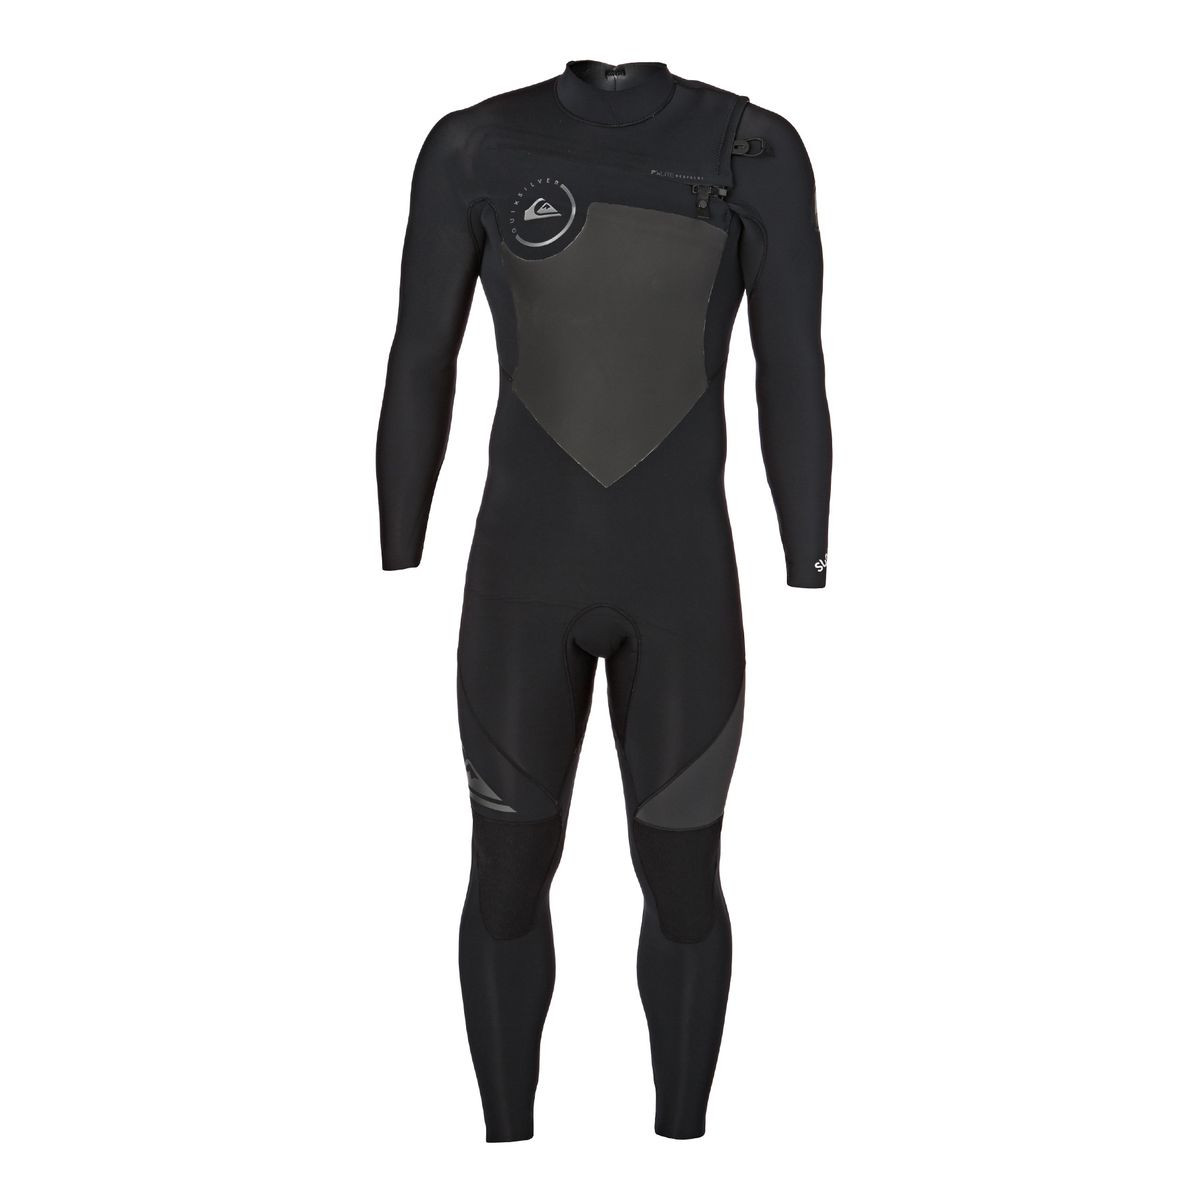 Quiksilver Syncro 4/3mm 2017 Chest Zip Wetsuit - Black